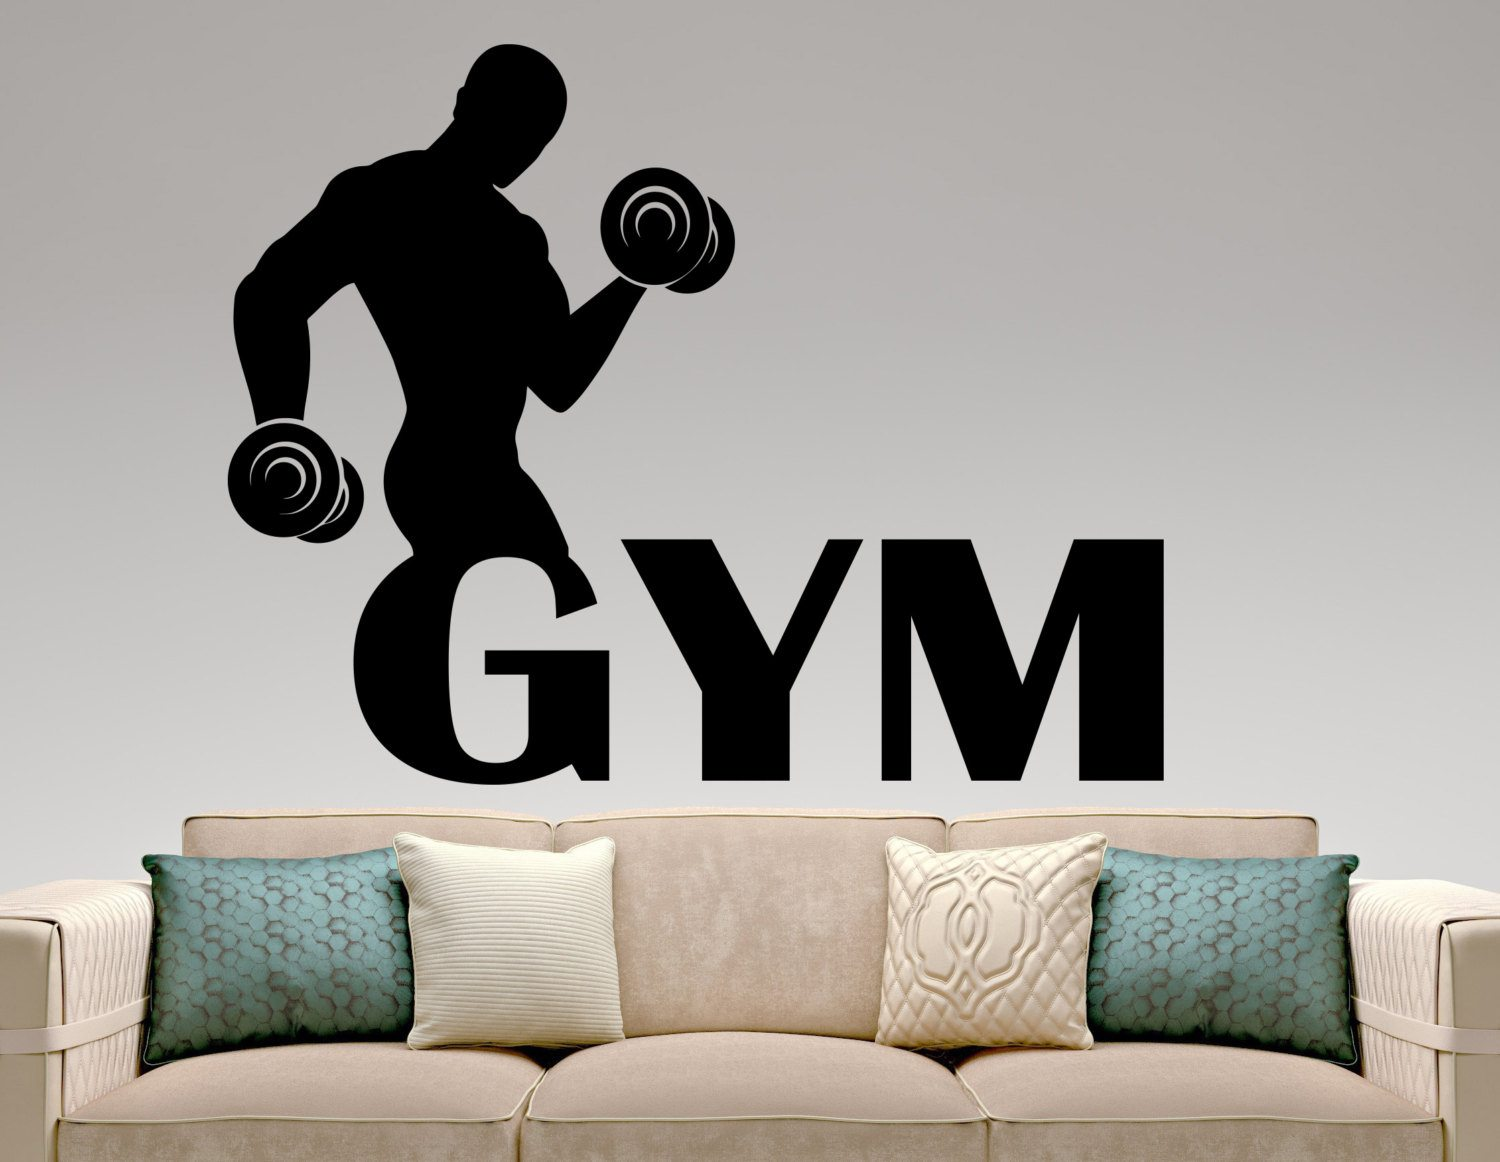 Sticker gym wall - Gym Wall Decals